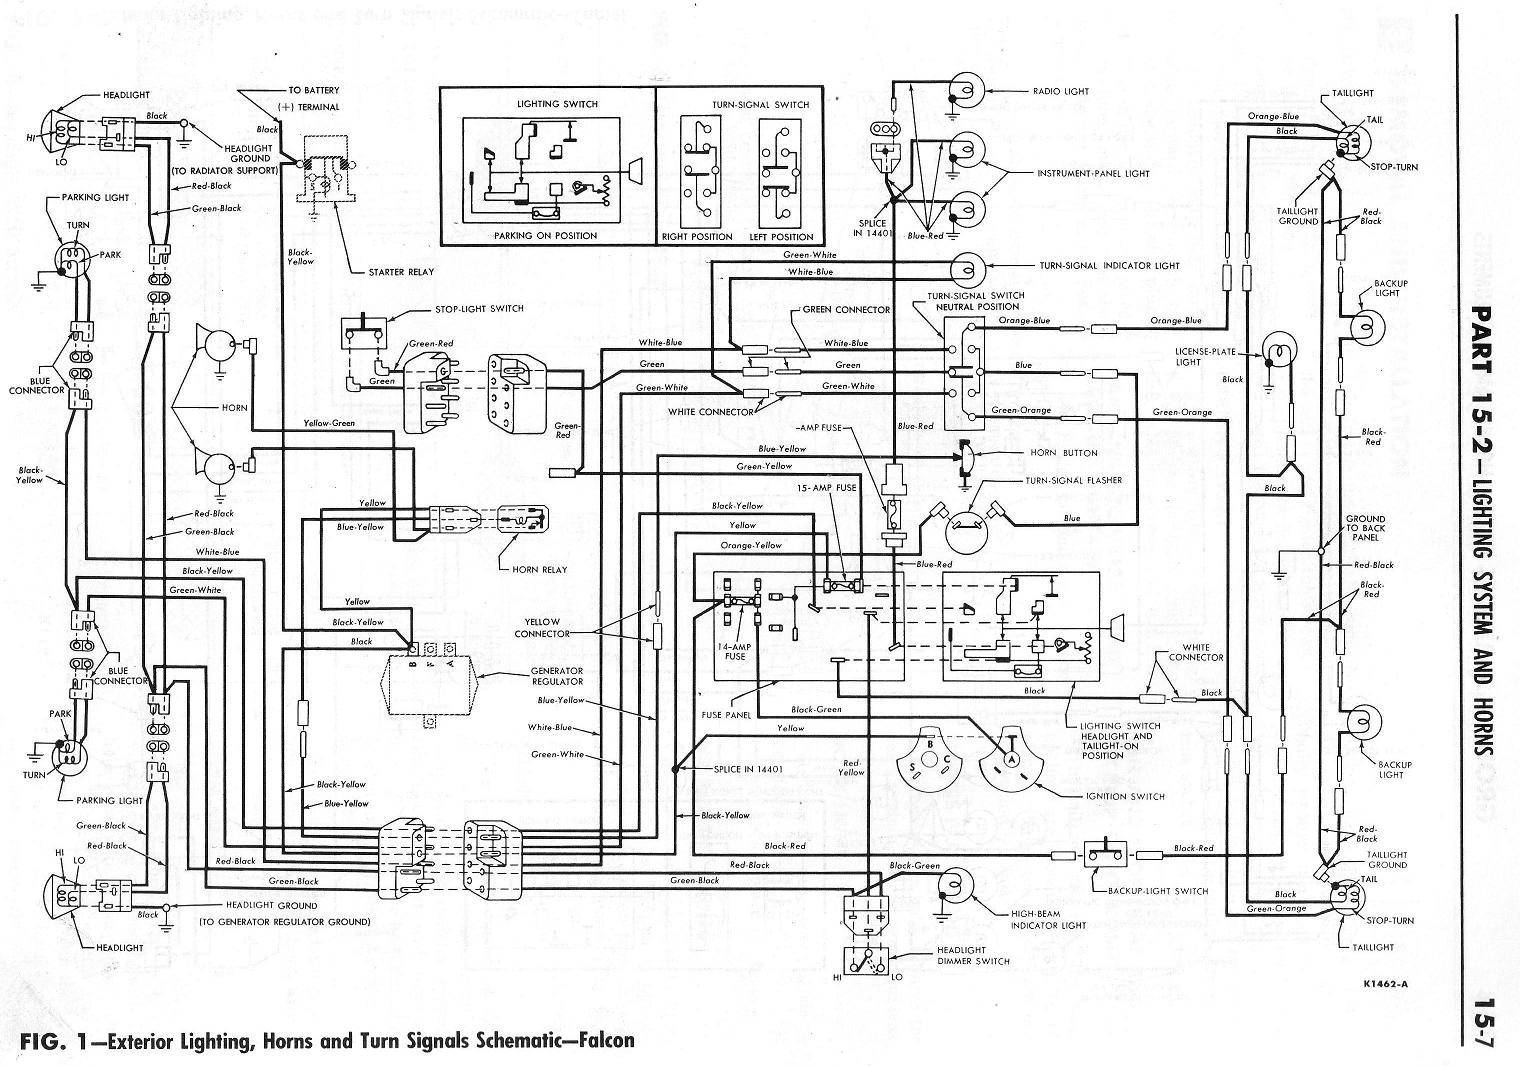 nx_2086] industrial yesterday39s tractors on wiring harness ford 4000 tractor  schematic wiring  inrebe hyedi mohammedshrine librar wiring 101